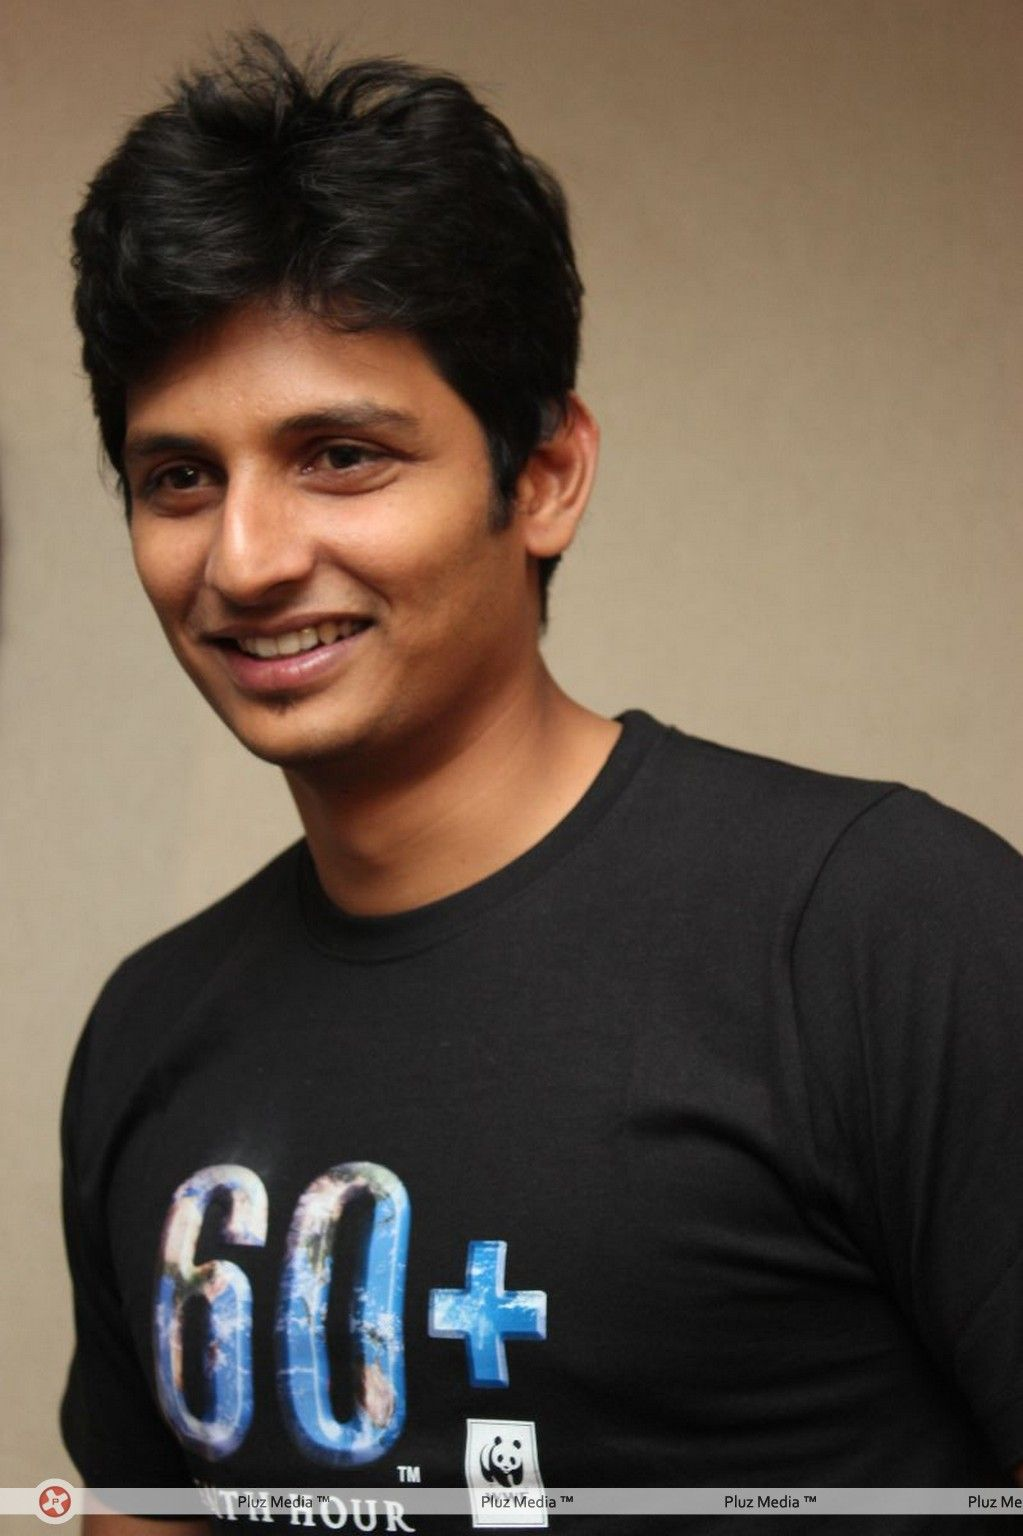 jeeva songs starmusiqjeeva klui resort, jeeva klui, jeeva beloam, jeeva coconut oil, jeeva actor, jeeva comedy movies, jeeva samadhi, jeeva tamil actor, jeeva wireless, jeeva song, jeeva saba, jeeva actor next movie, jeeva santai, jeeva nadhi lyrics, jeeva organic coconut oil, jeeva bhat, jeeva songs starmusiq, jeeva movie list in tamil, jeeva movie hd online, jeeva hotel lombok